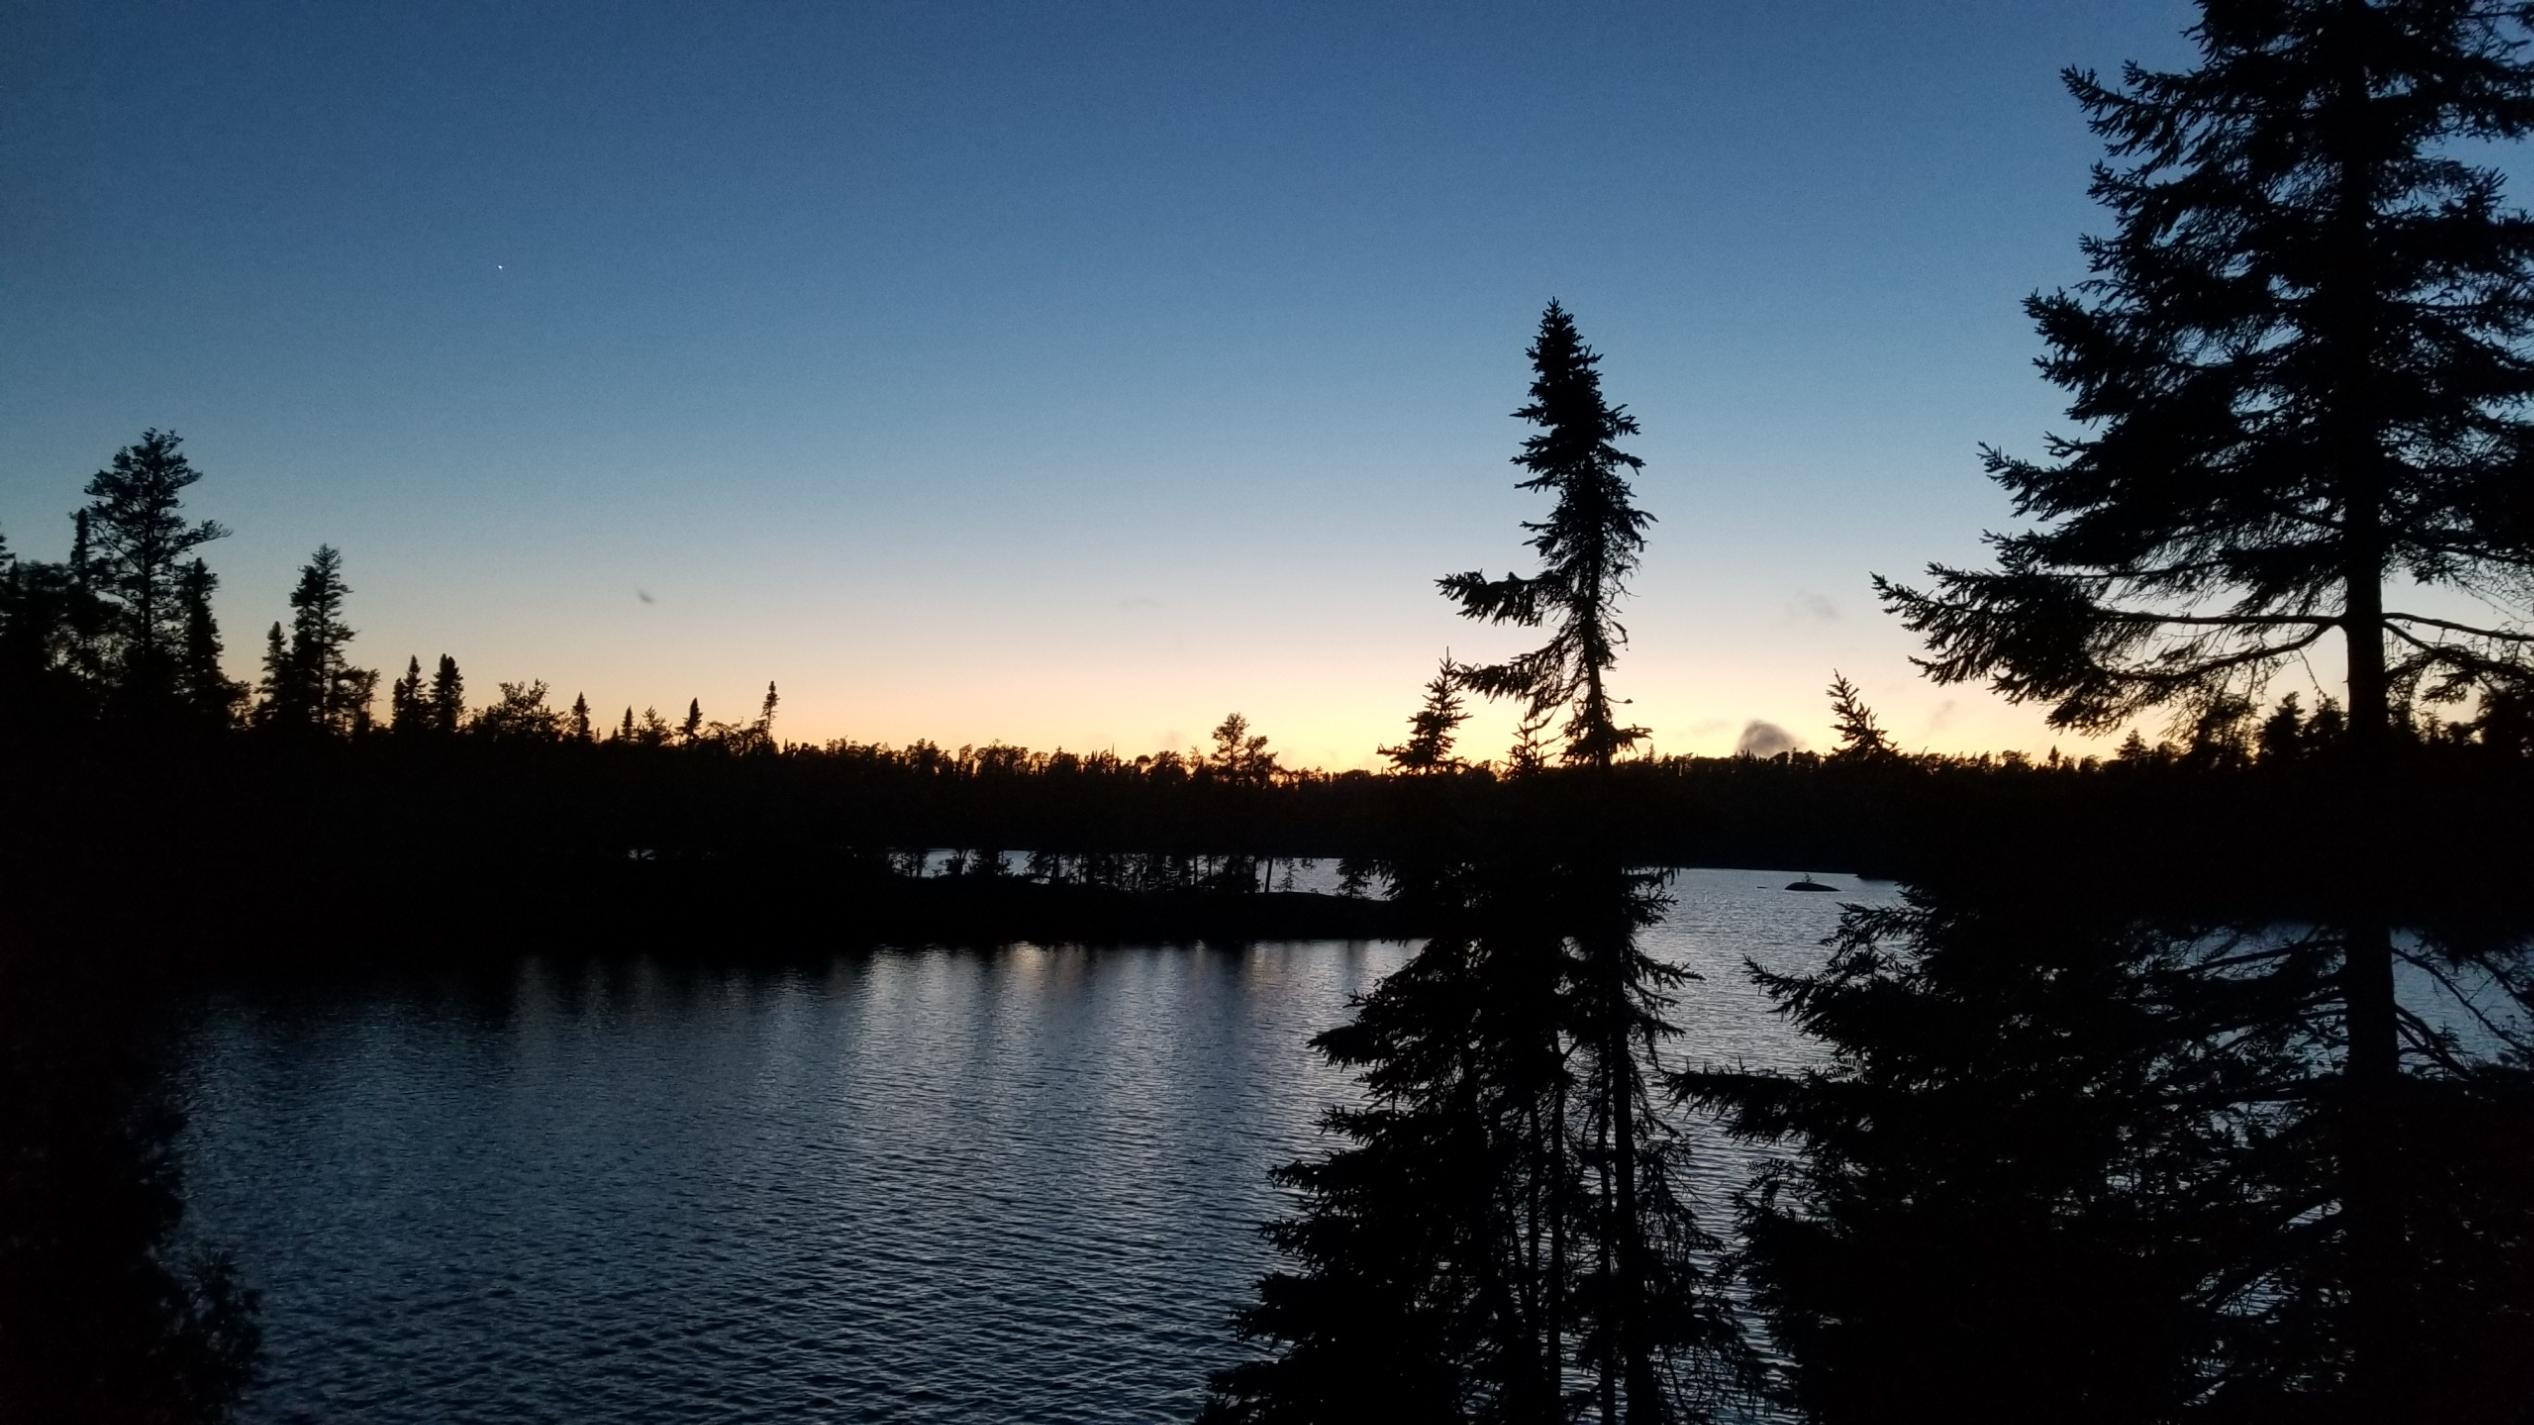 Our first evening in BWCA